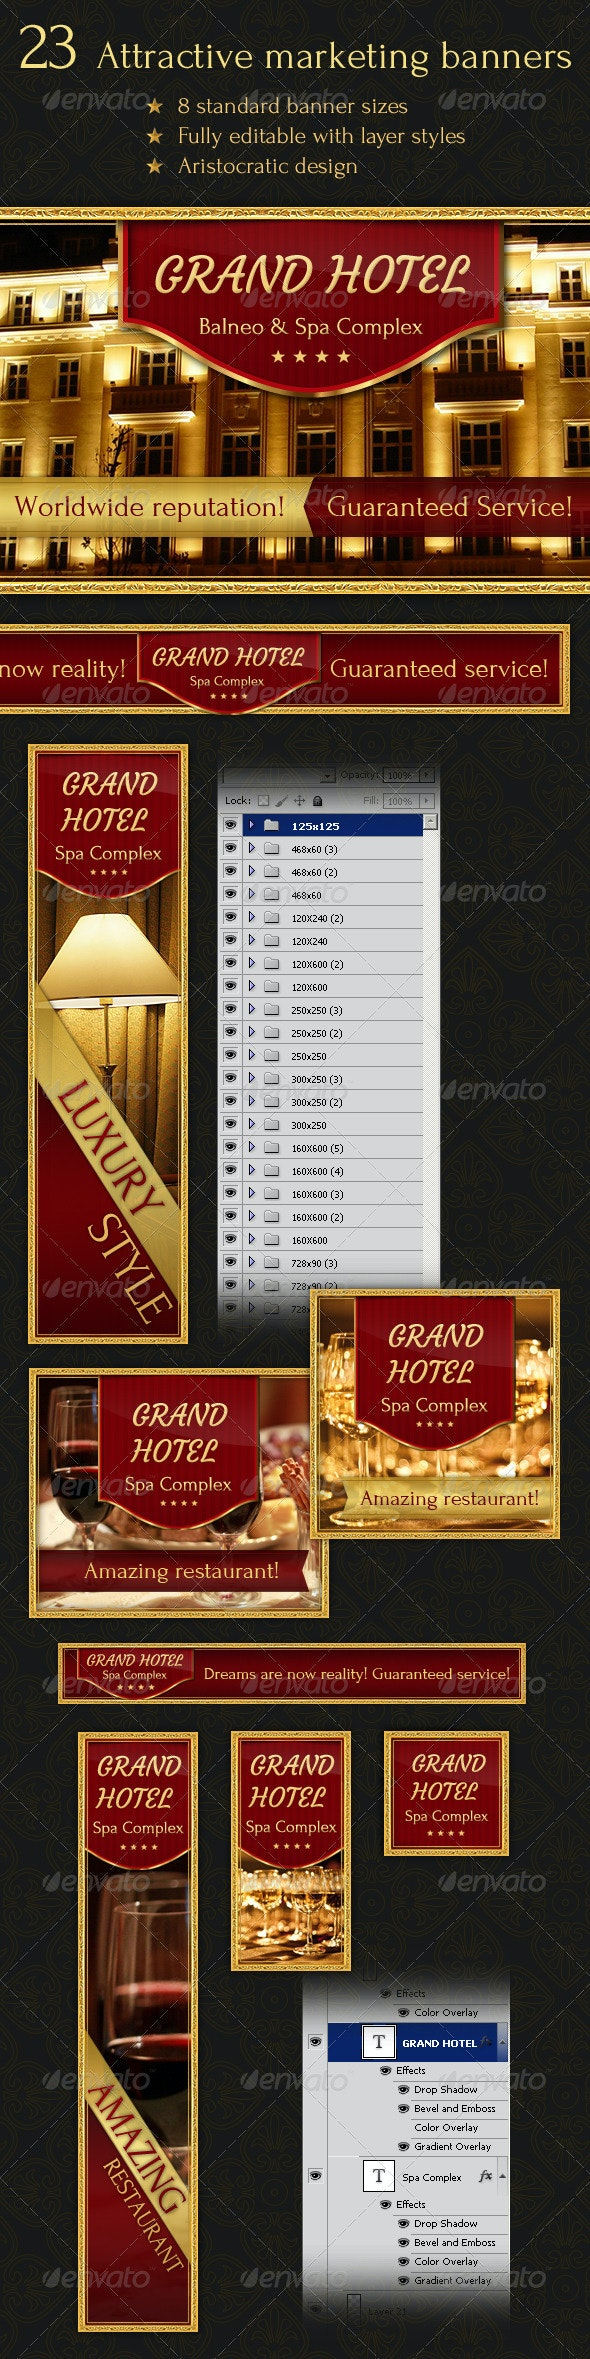 23 Aristocratic Design Banners - Banners & Ads Web Elements